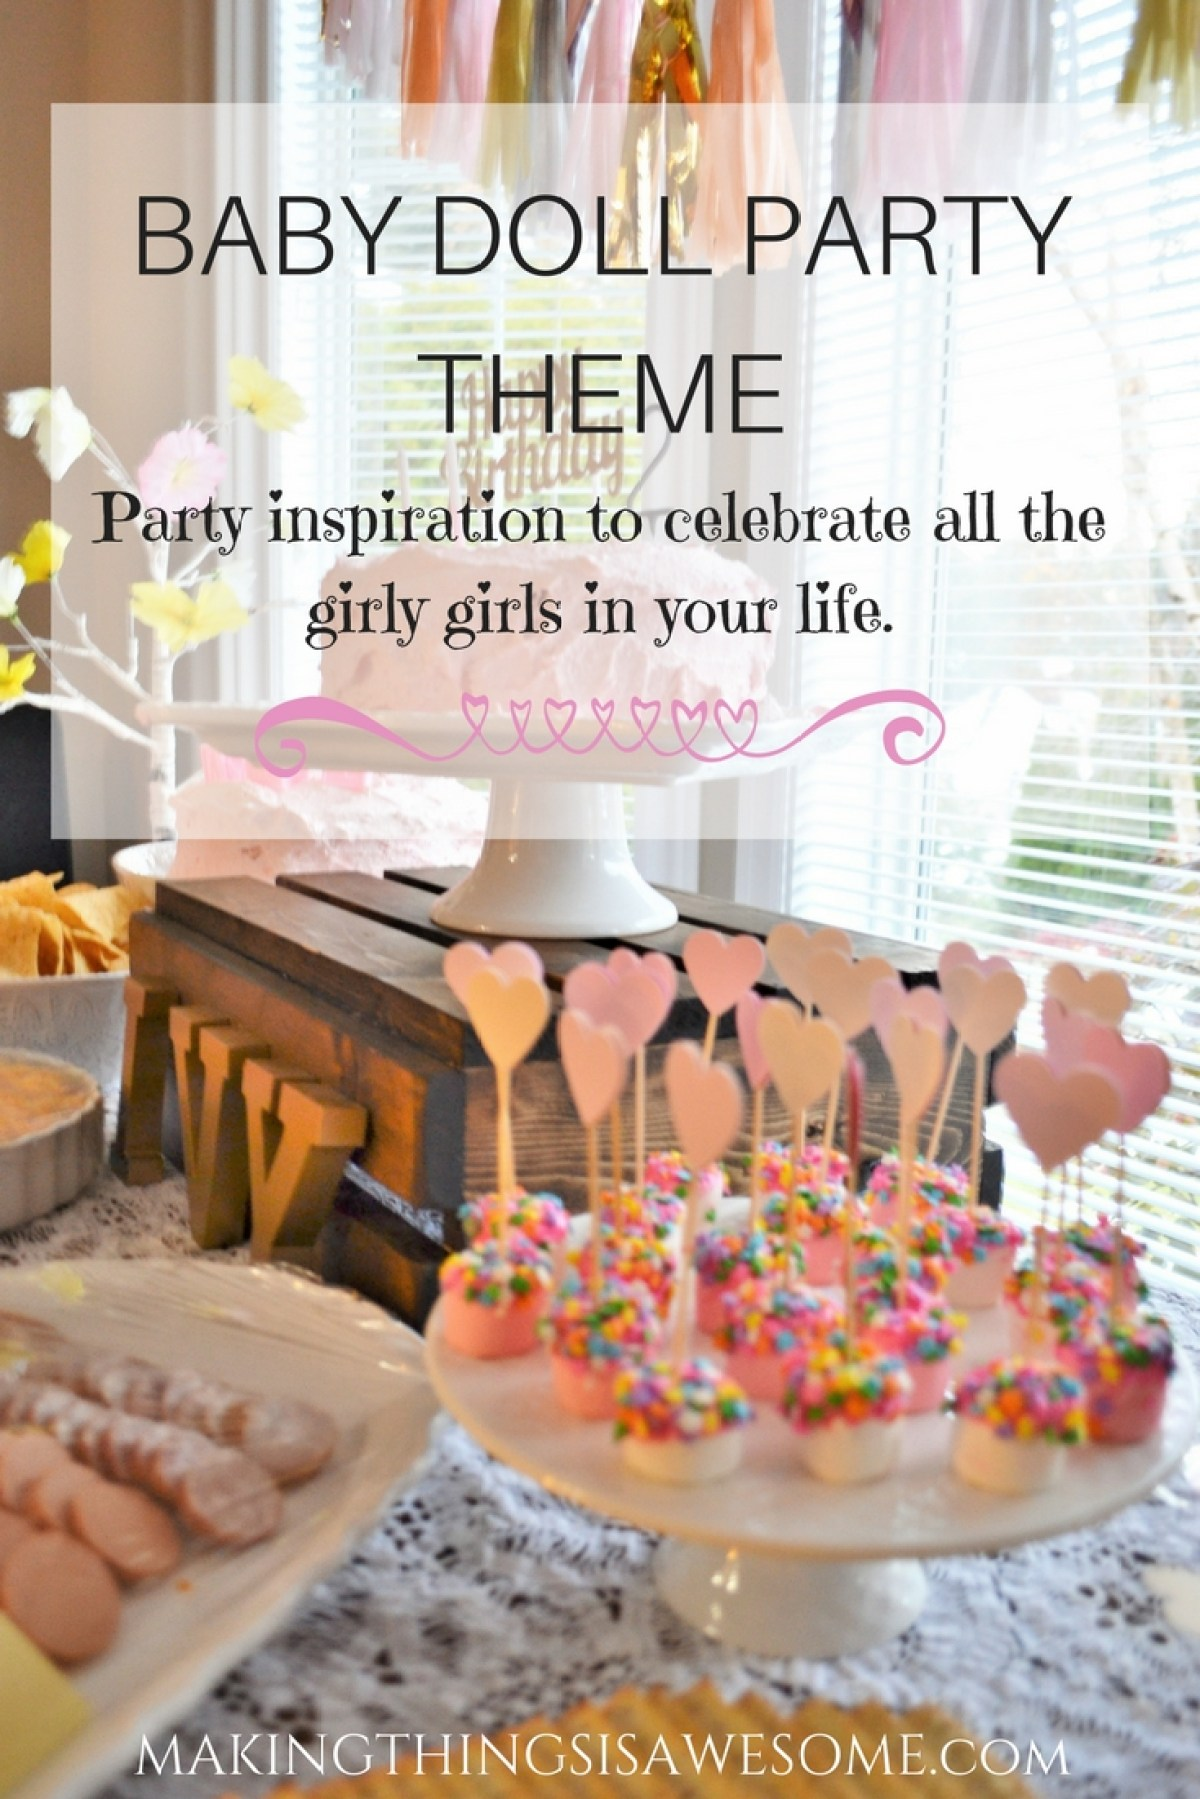 Baby Doll Party Theme - pin